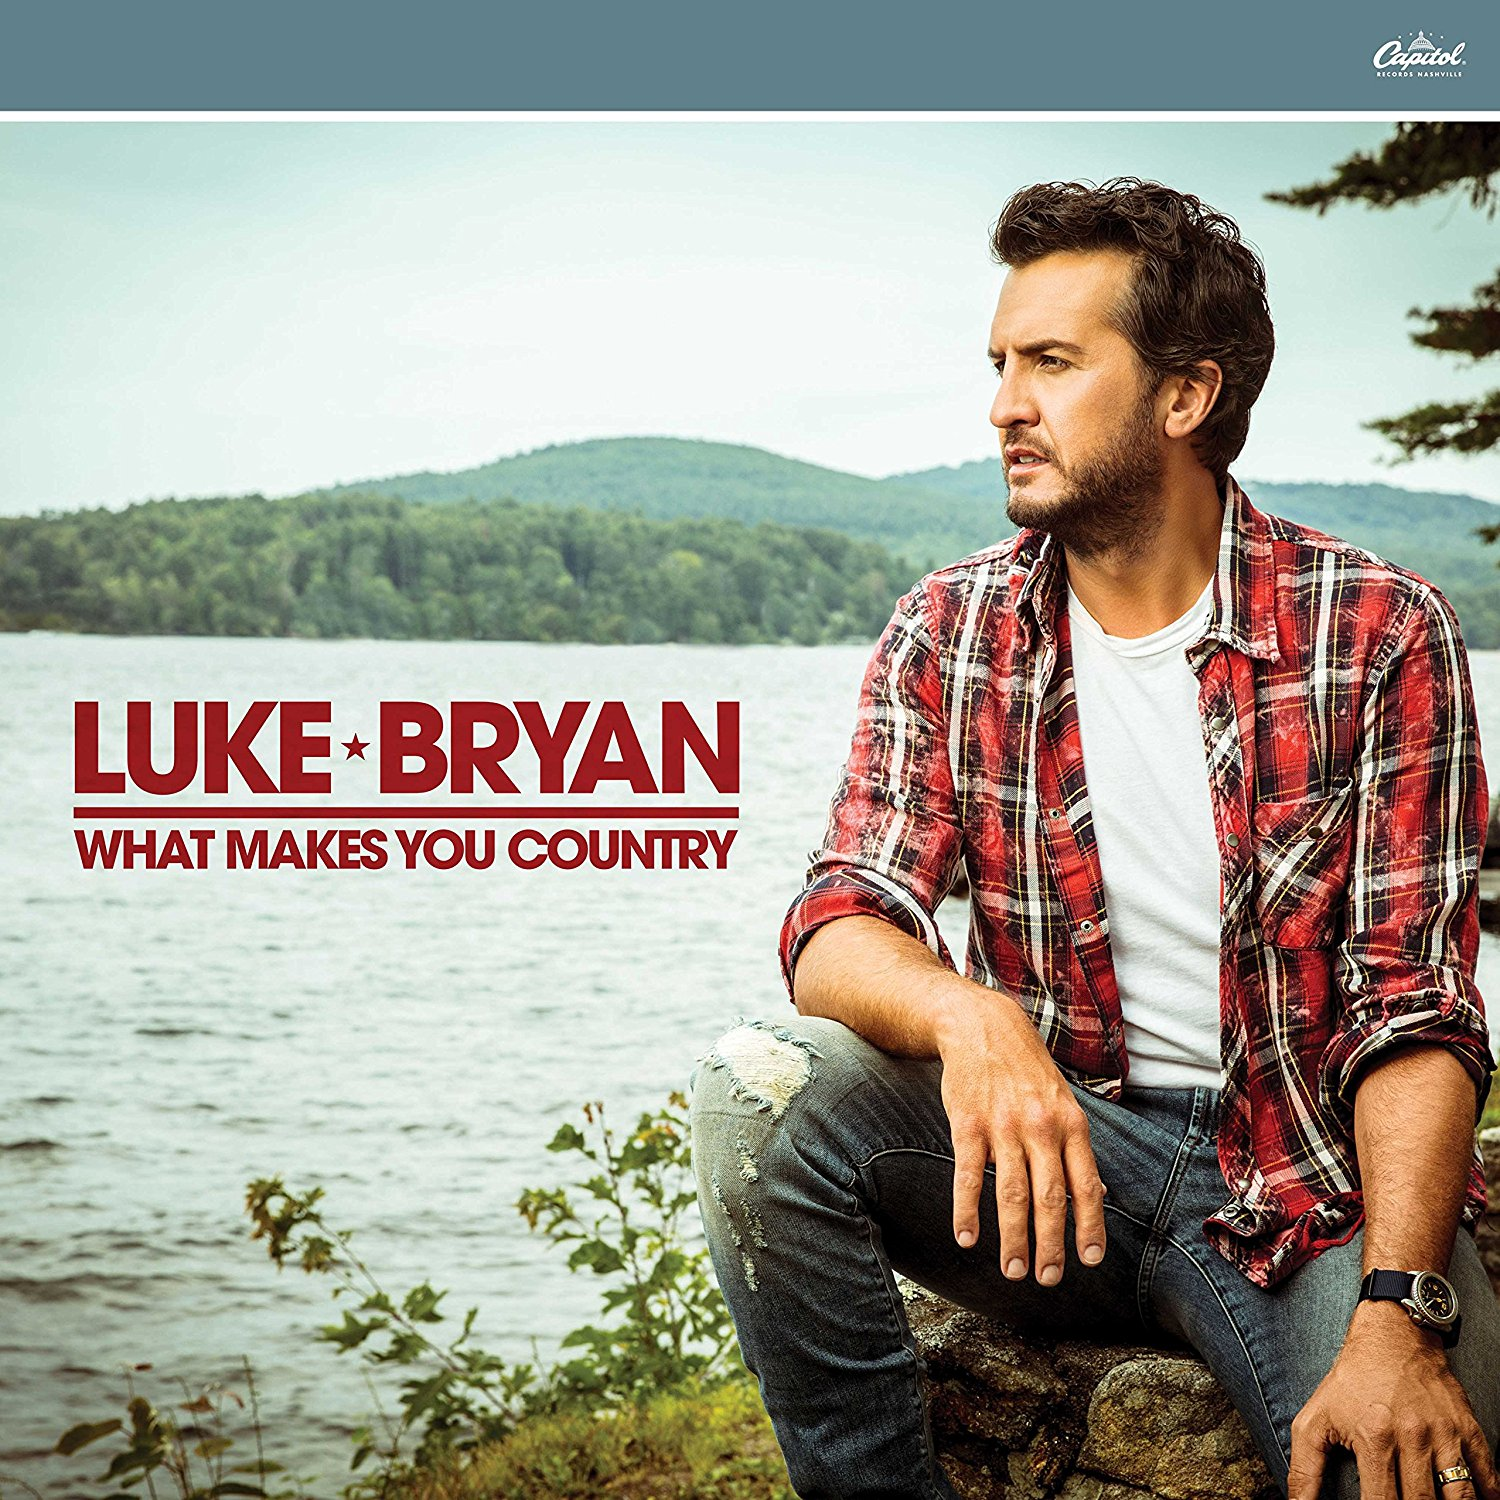 Luke Bryan, 'What Makes You Country' | Track Review